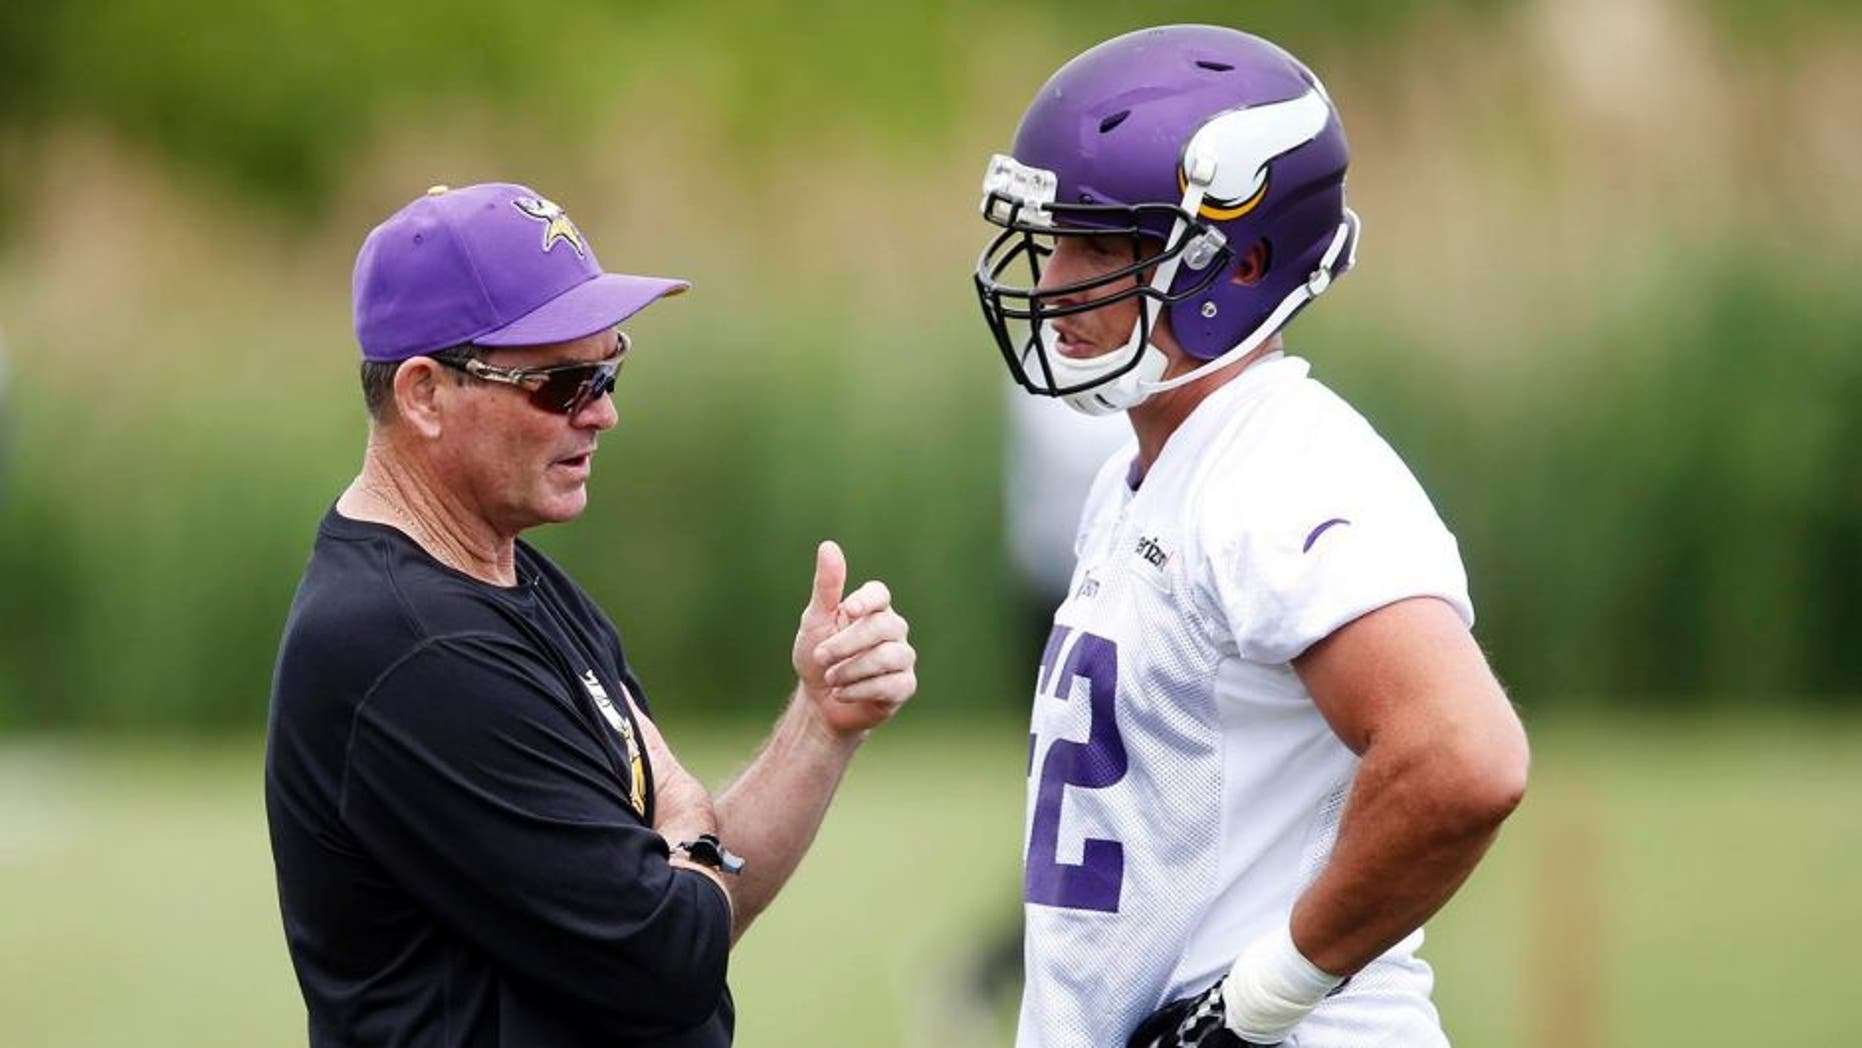 Minnesota Vikings head coach Mike Zimmer visits with linebacker Chad Greenway.